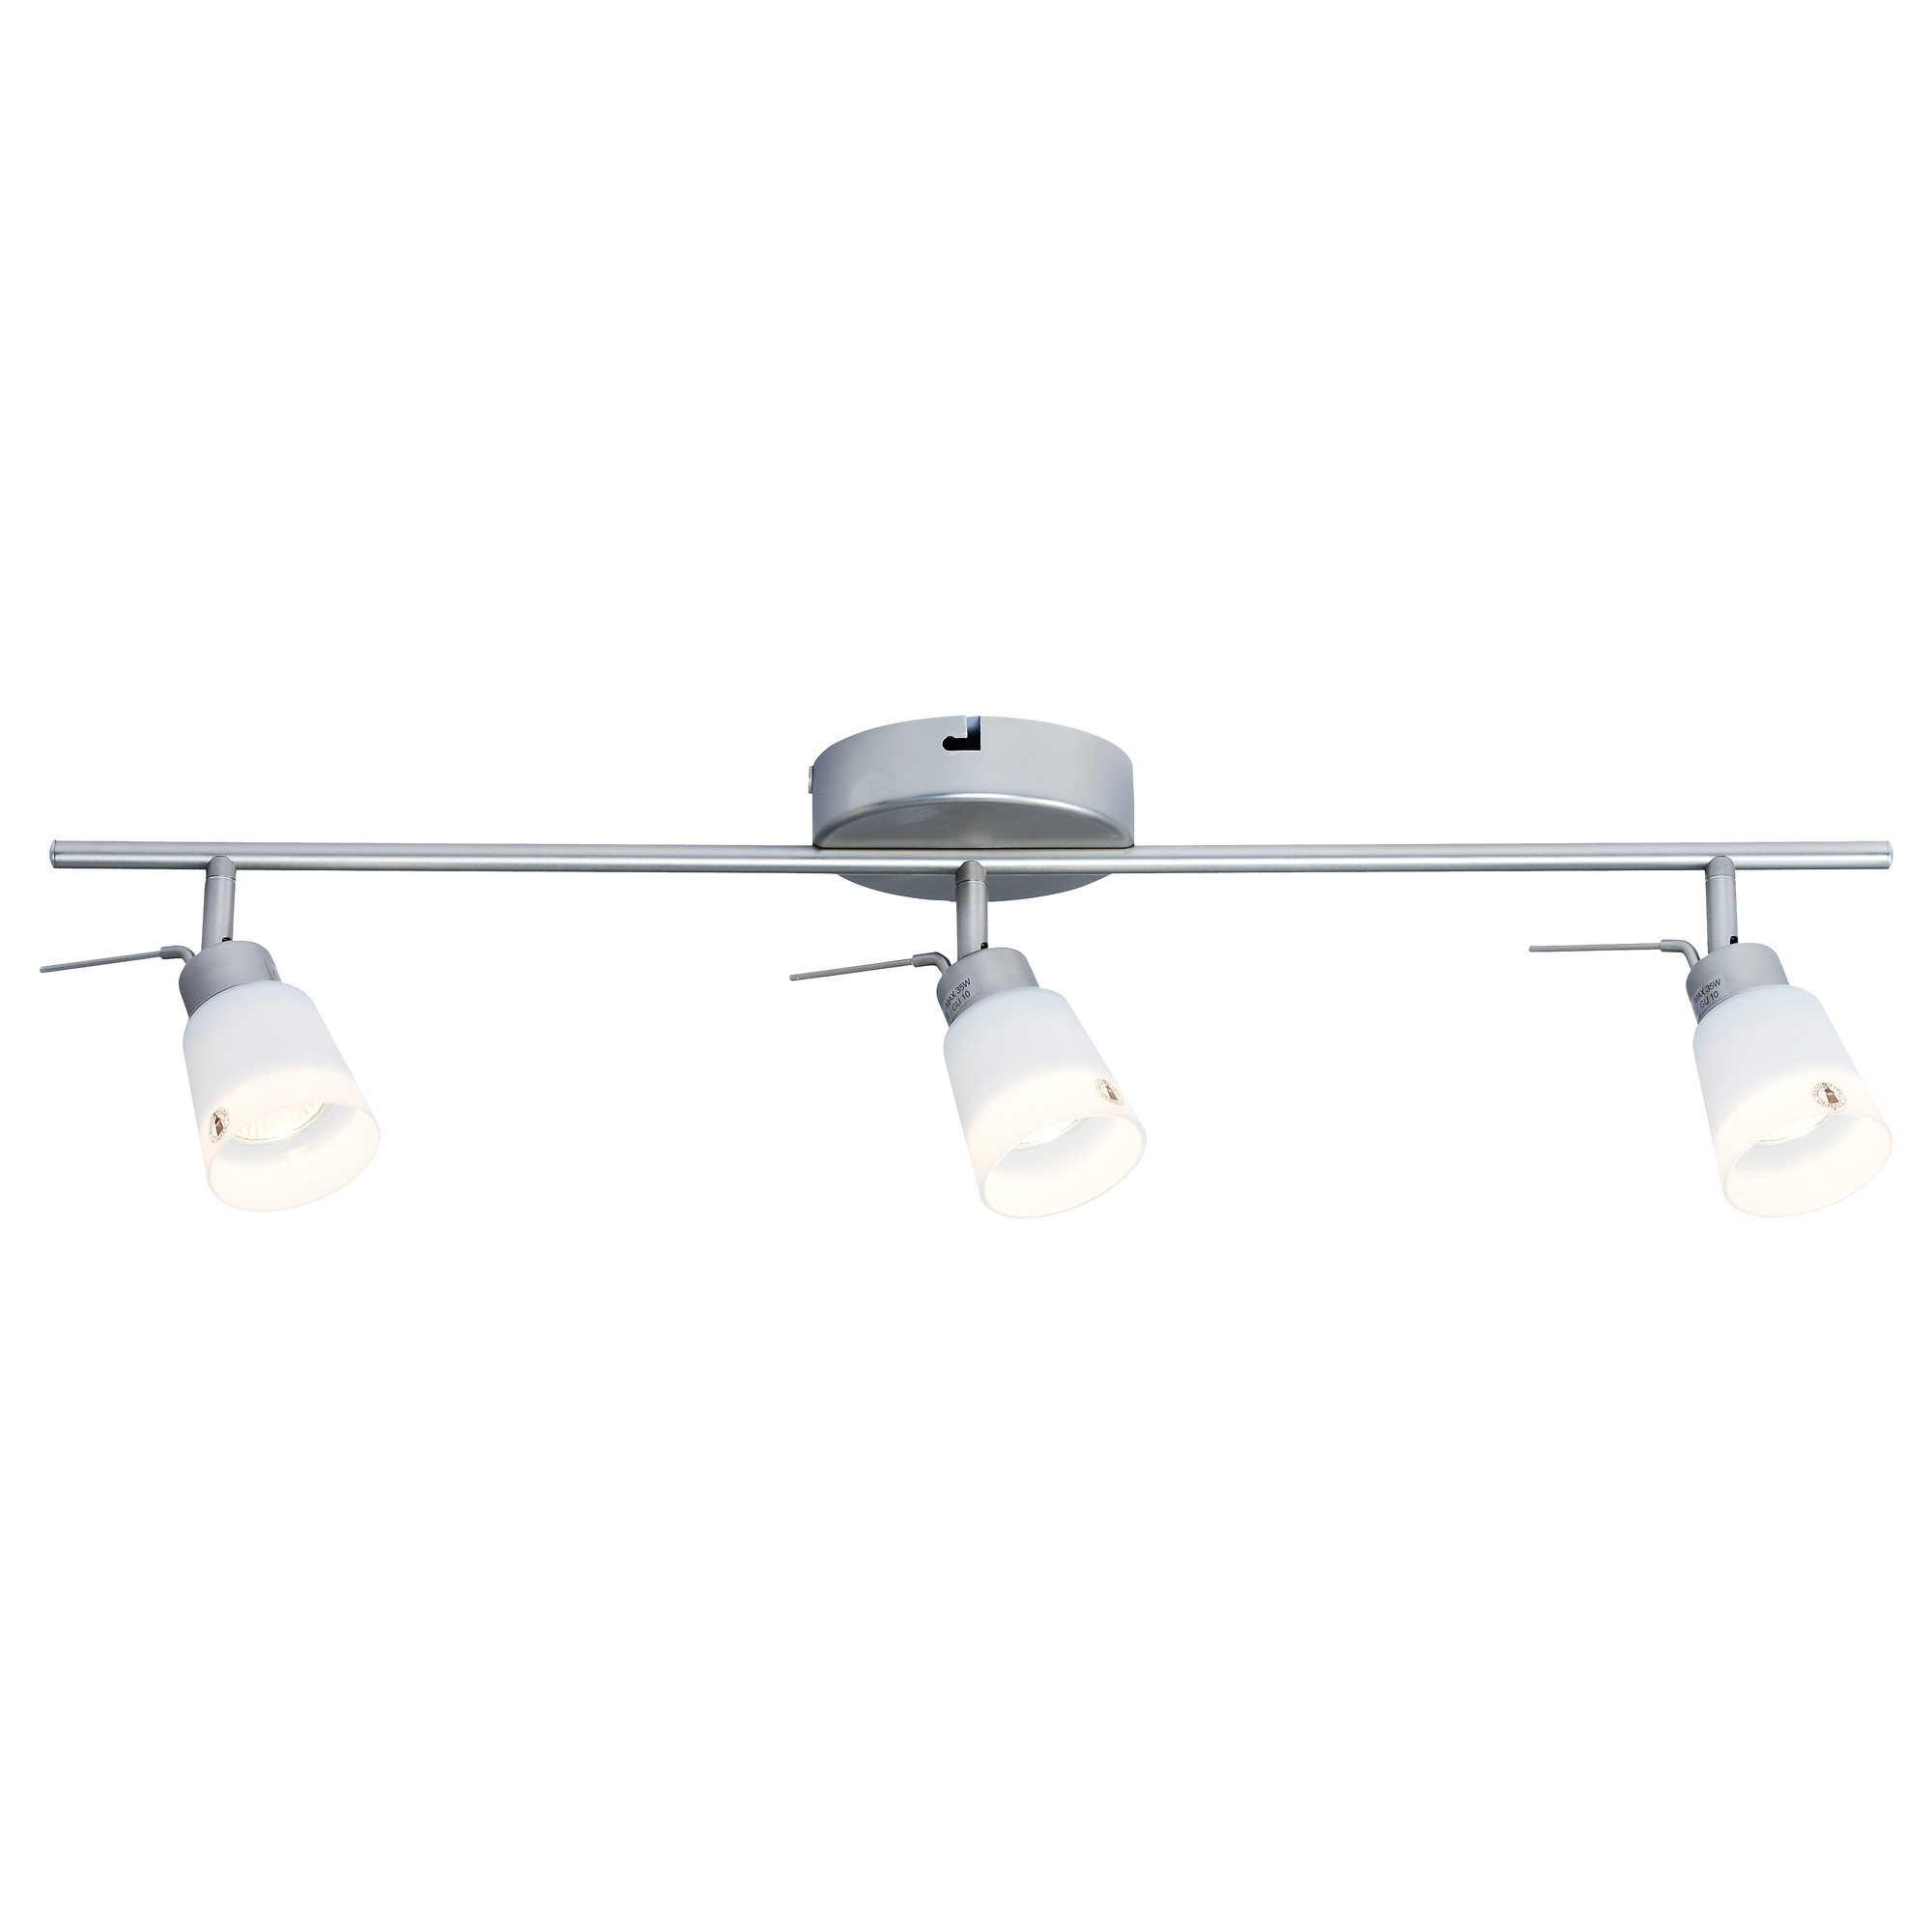 Basisk ceiling track 3 spotlights ikea lighting replacement for basisk ceiling track 3 spotlights ikea lighting replacement for kitchen aloadofball Images